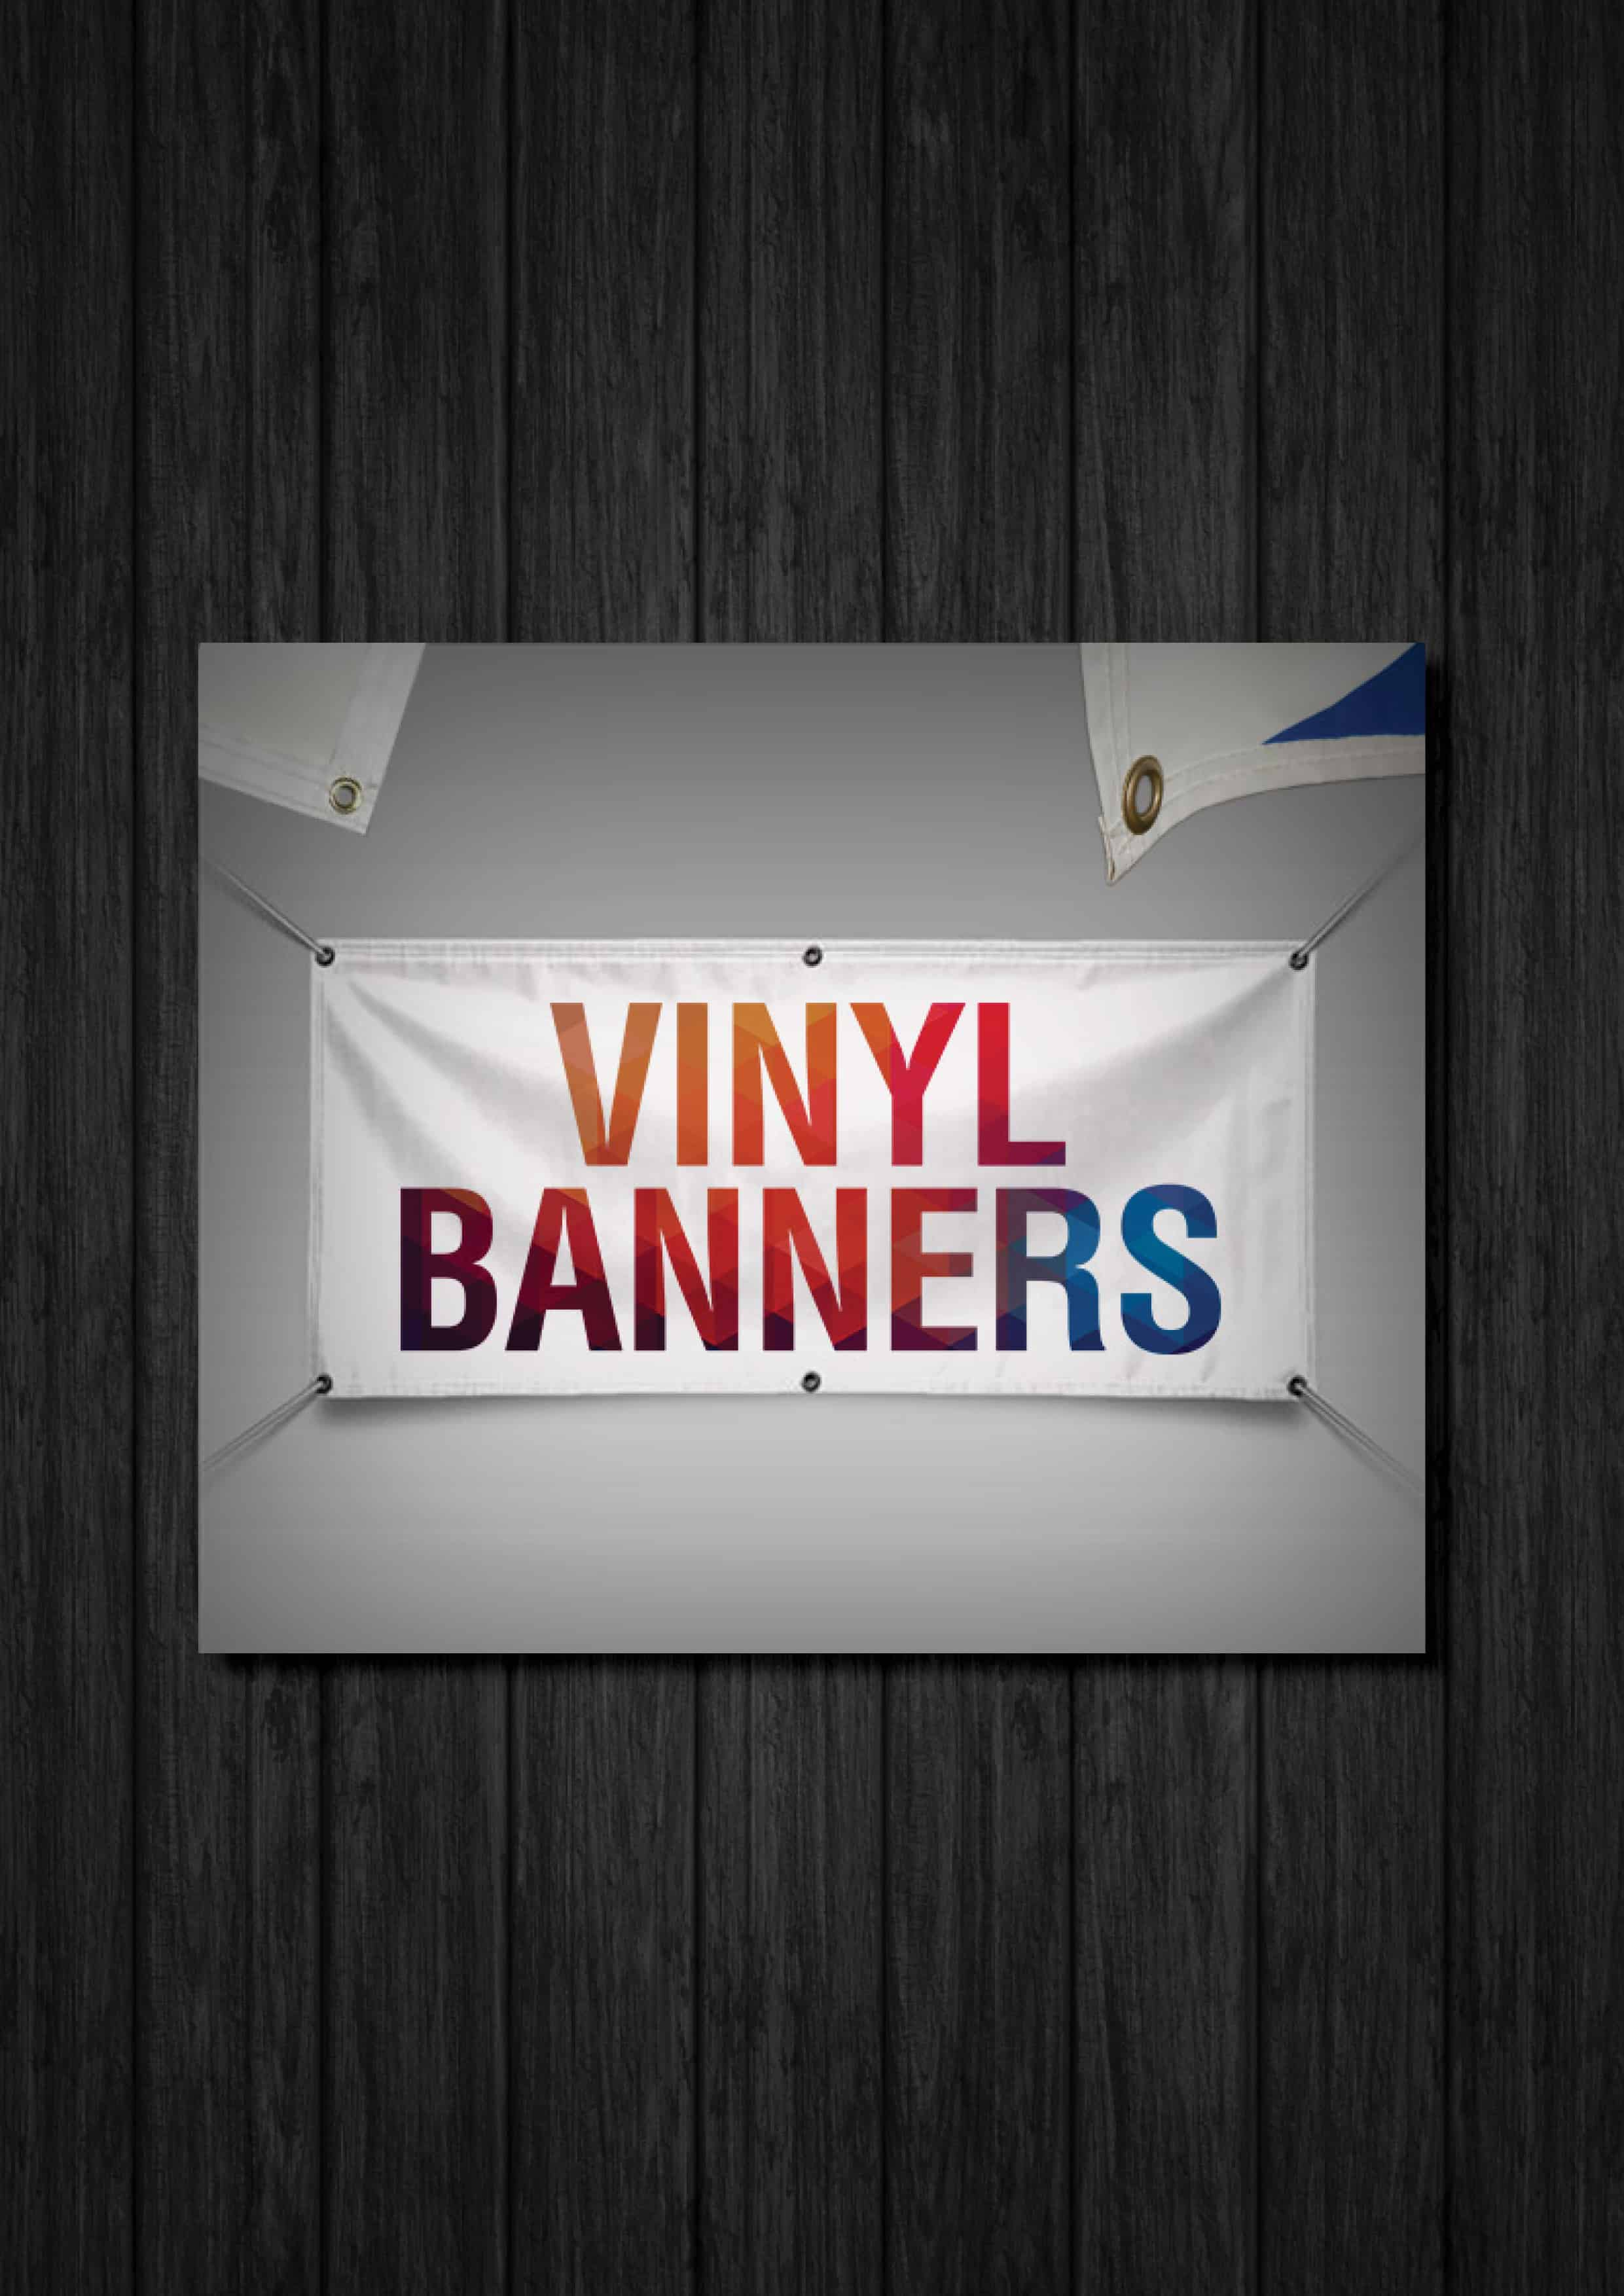 Vinyl Banners Printed Australia Gold Coast Brisbane Tweed. Commercial Outdoor Signage. 21 Week Signs Of Stroke. Easter Bunny Banners. Sport Car Stickers. Where Can You Buy Records. Cardiac Signs. Adjustment Disorder Signs. Bathroom Signs Of Stroke